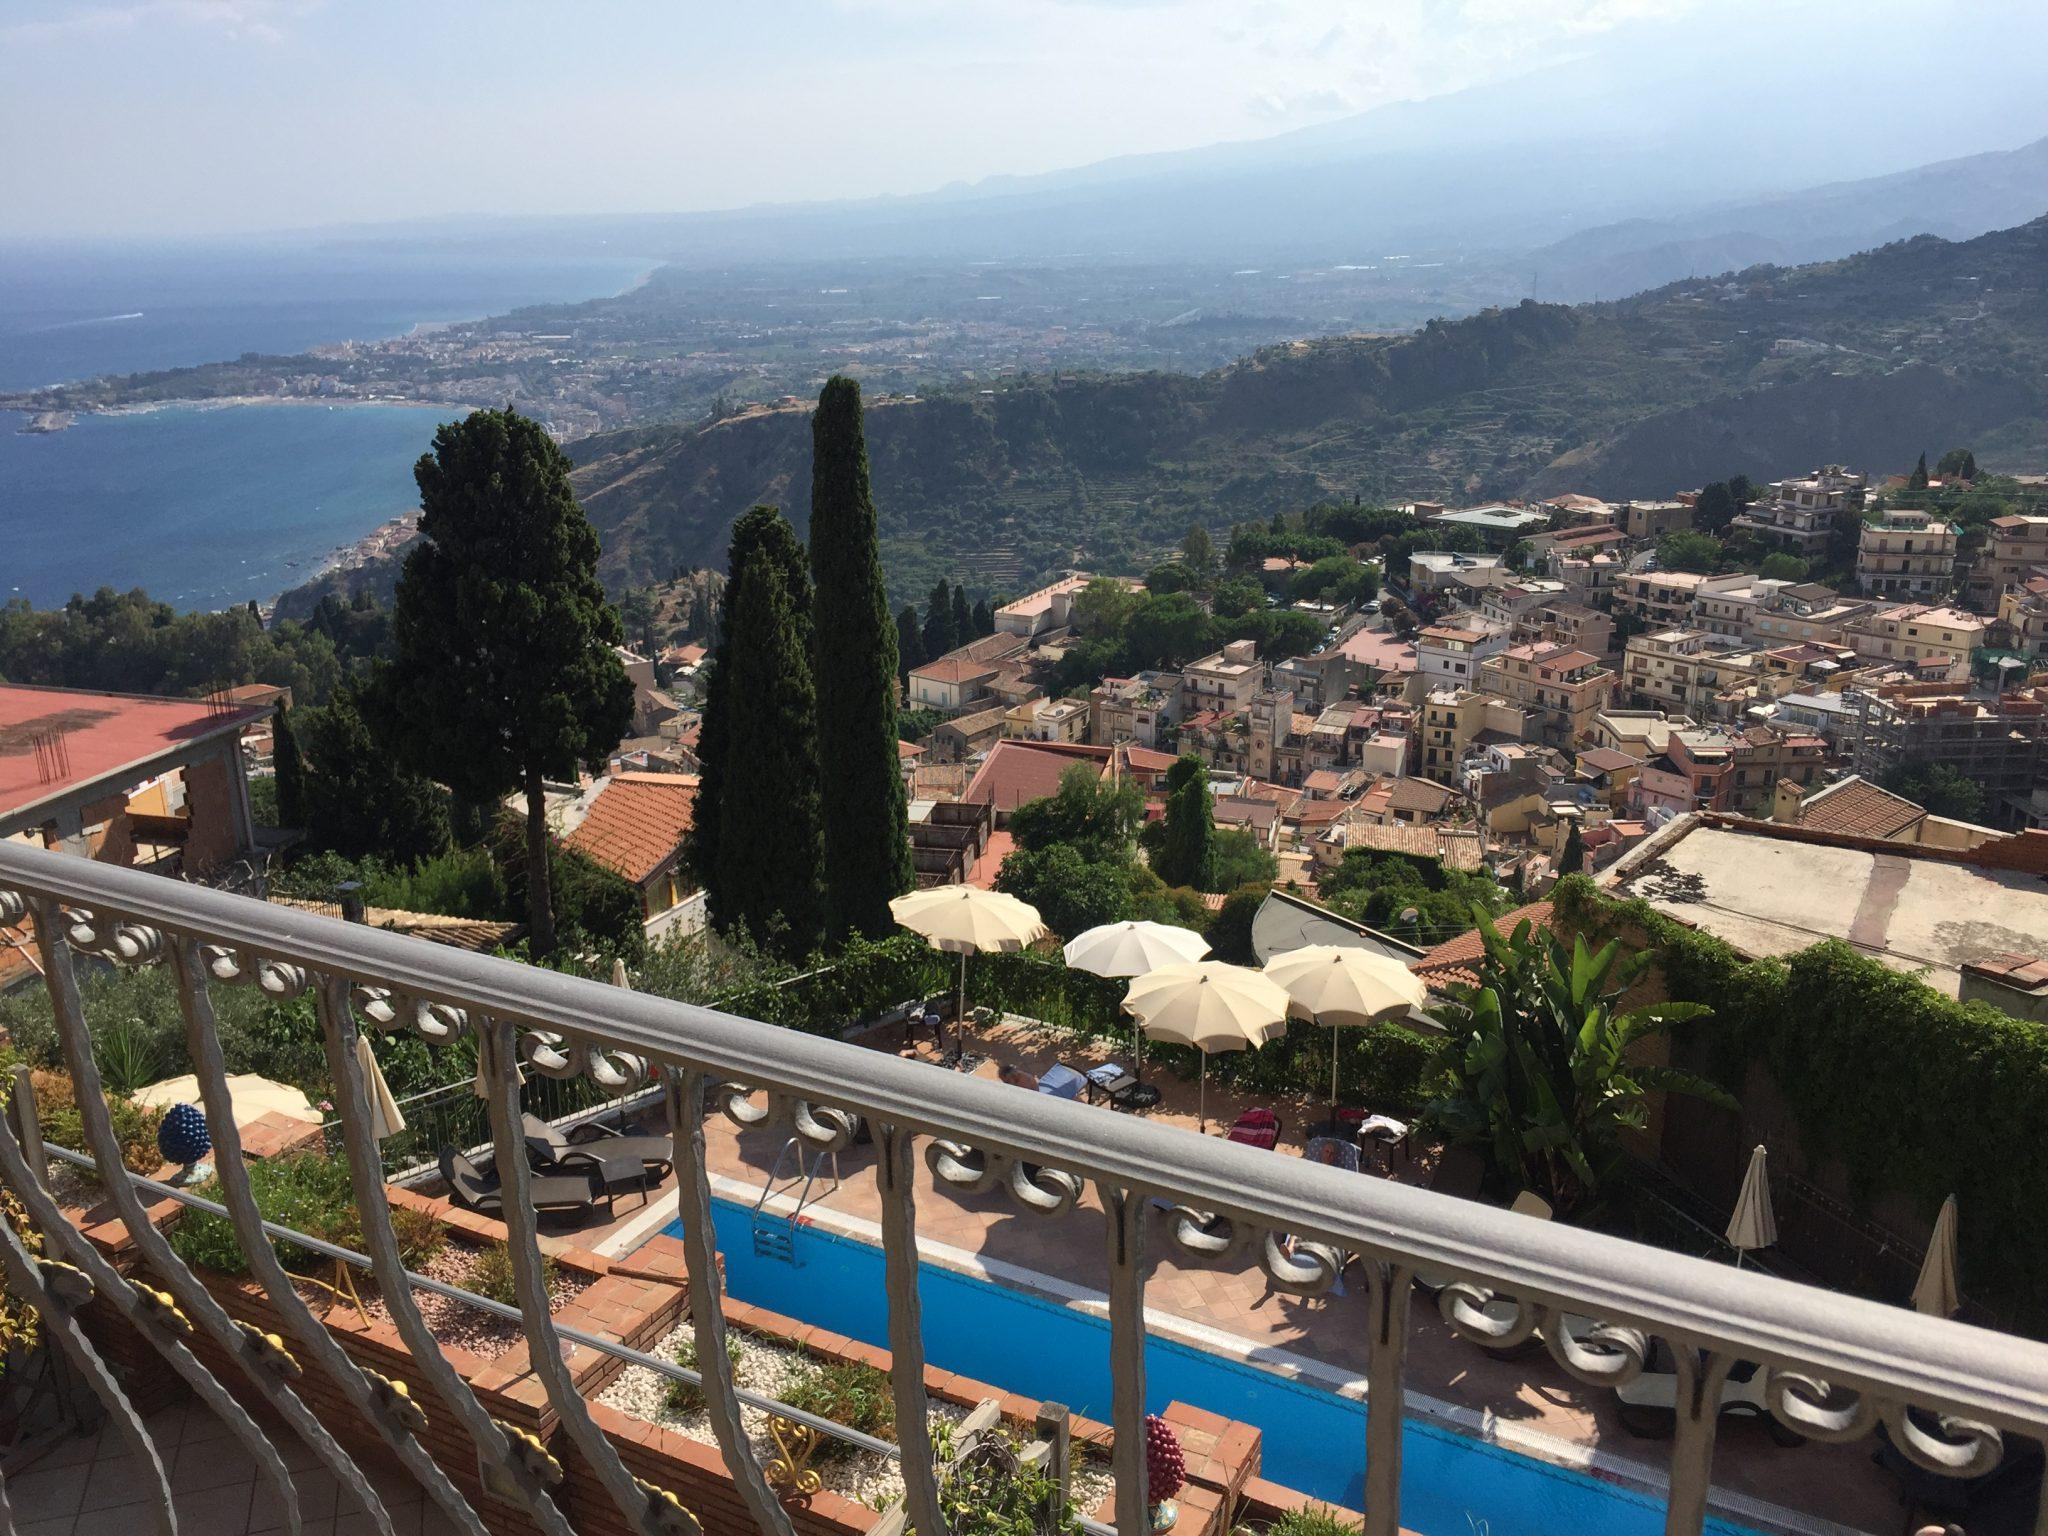 The view from Hotel Villa Angela taormina